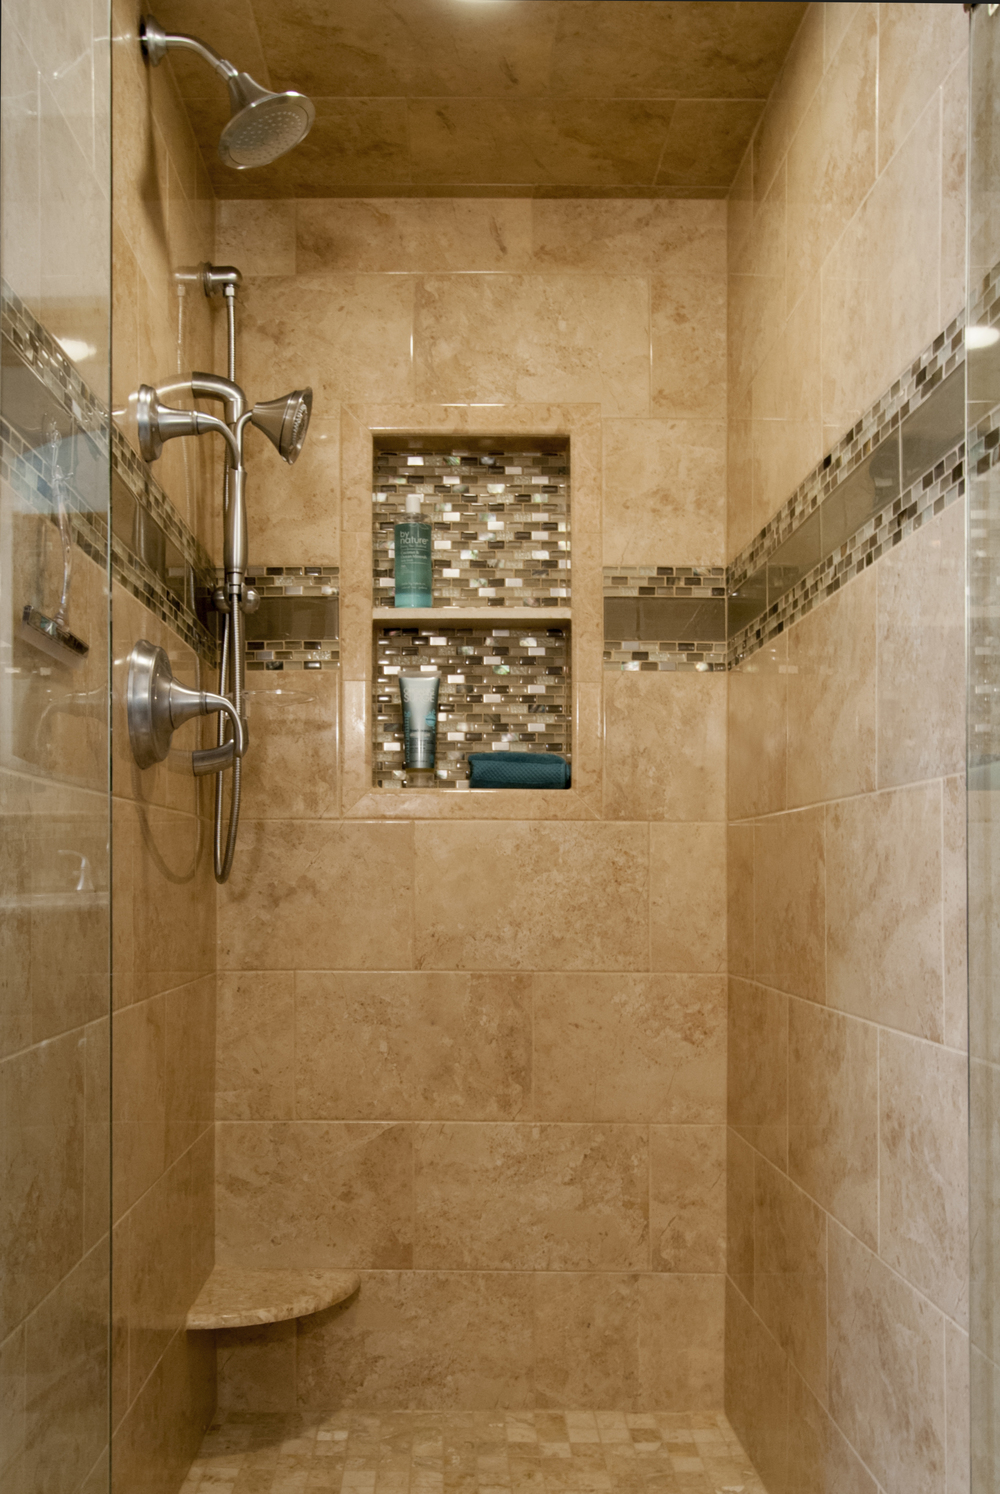 pros design of build niche creativity bathroom shower and ideas home innovation